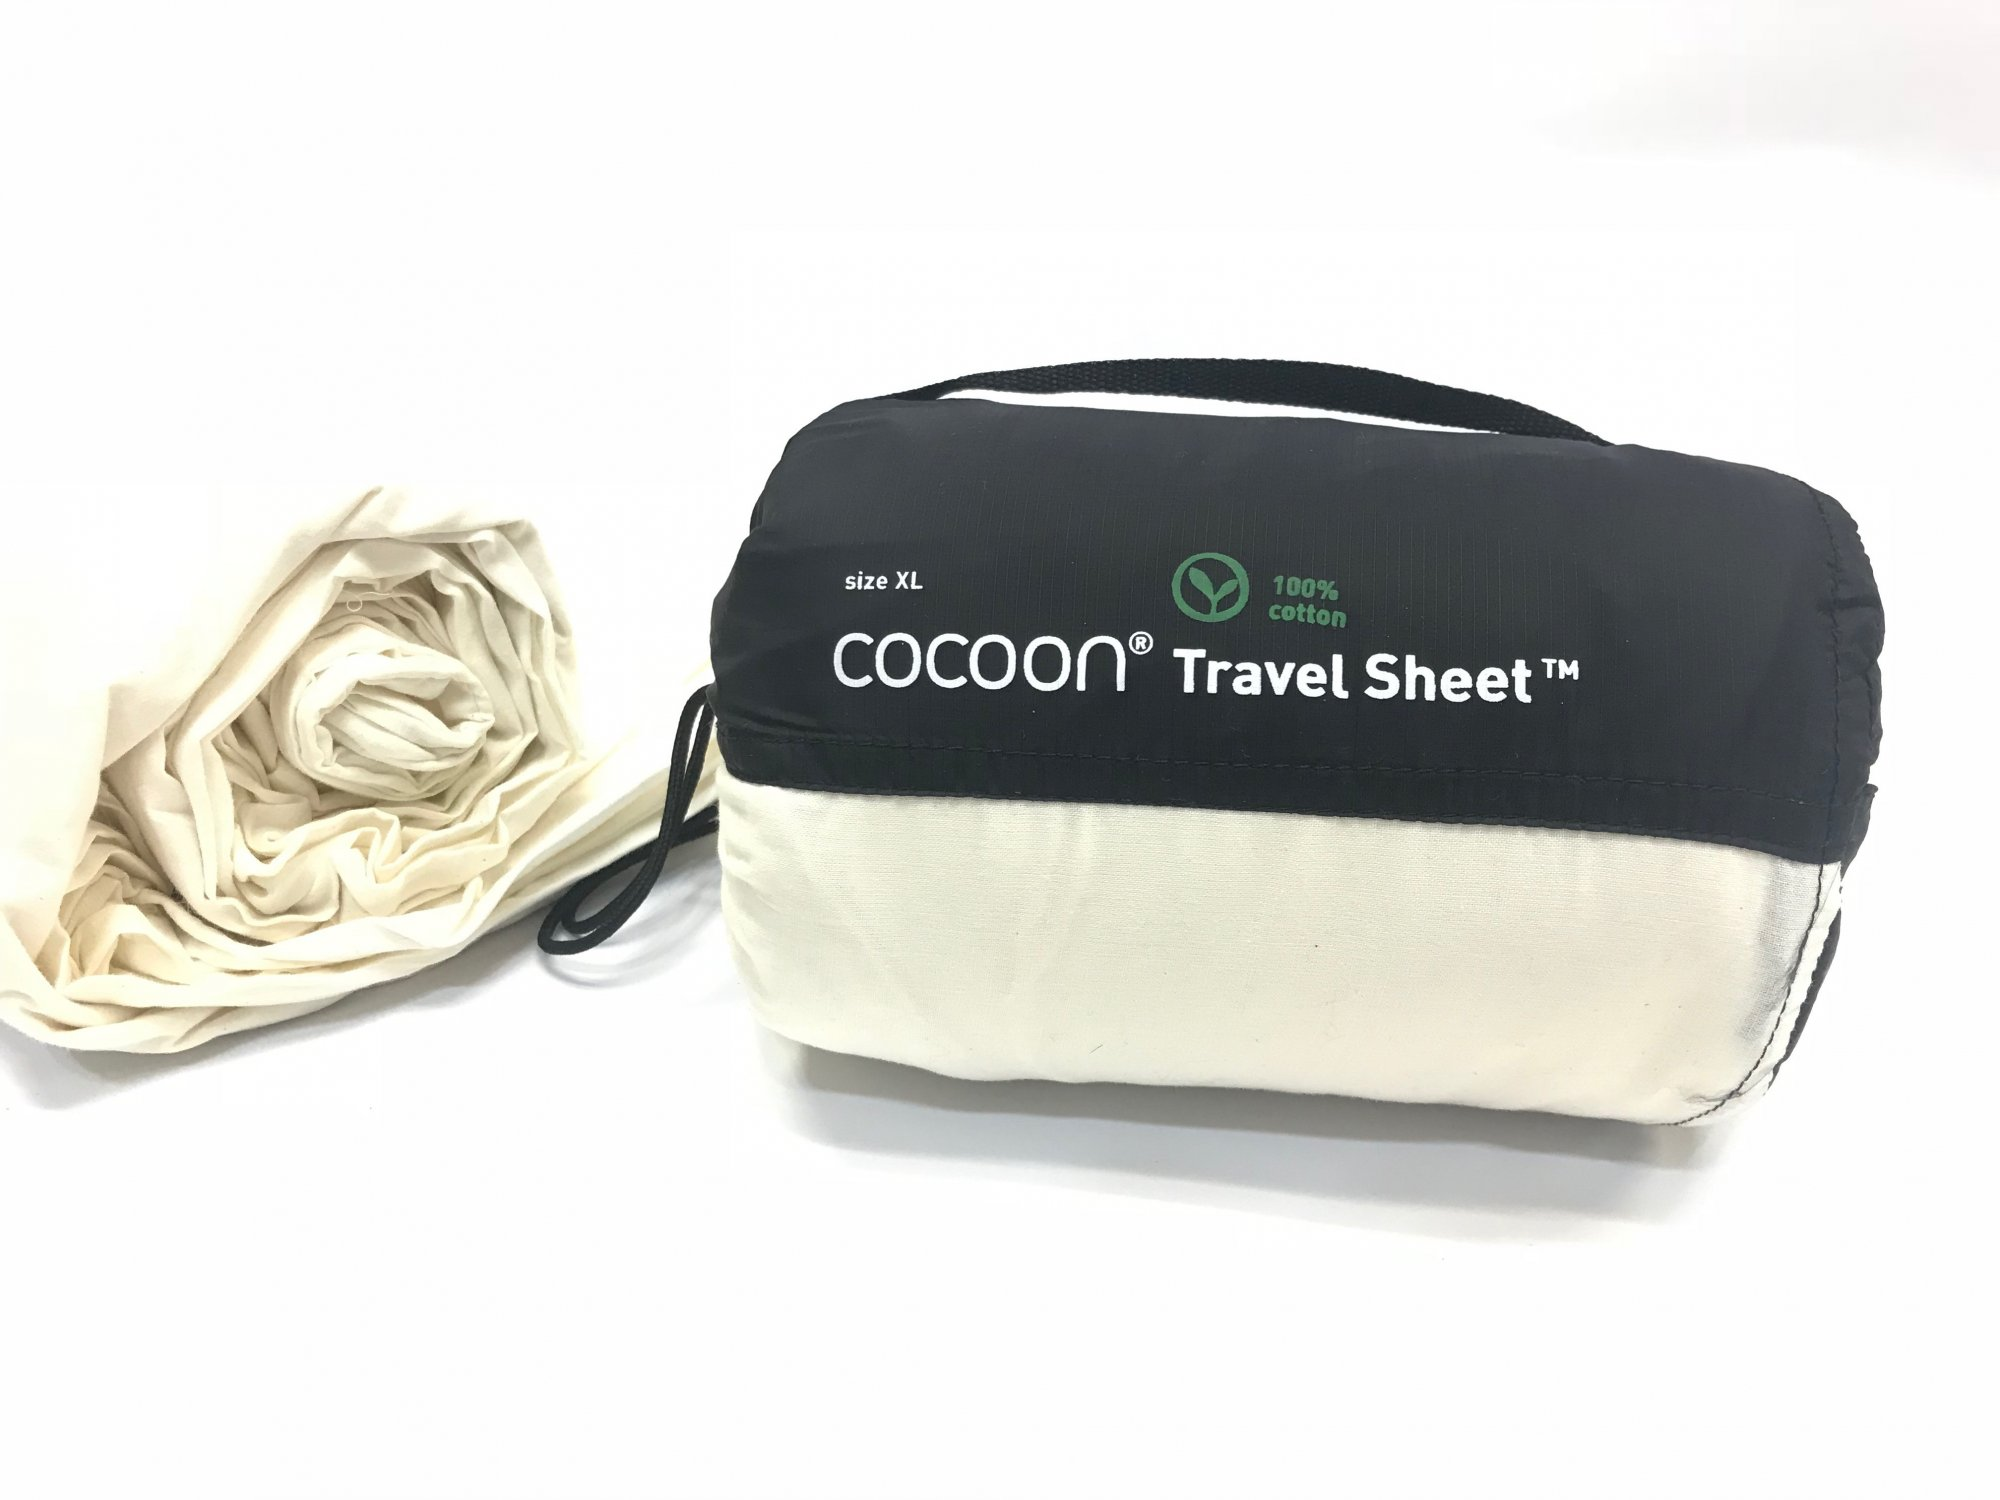 Cocoon Travel Sheet (240x114) cotton  PreTreated with Permethrin